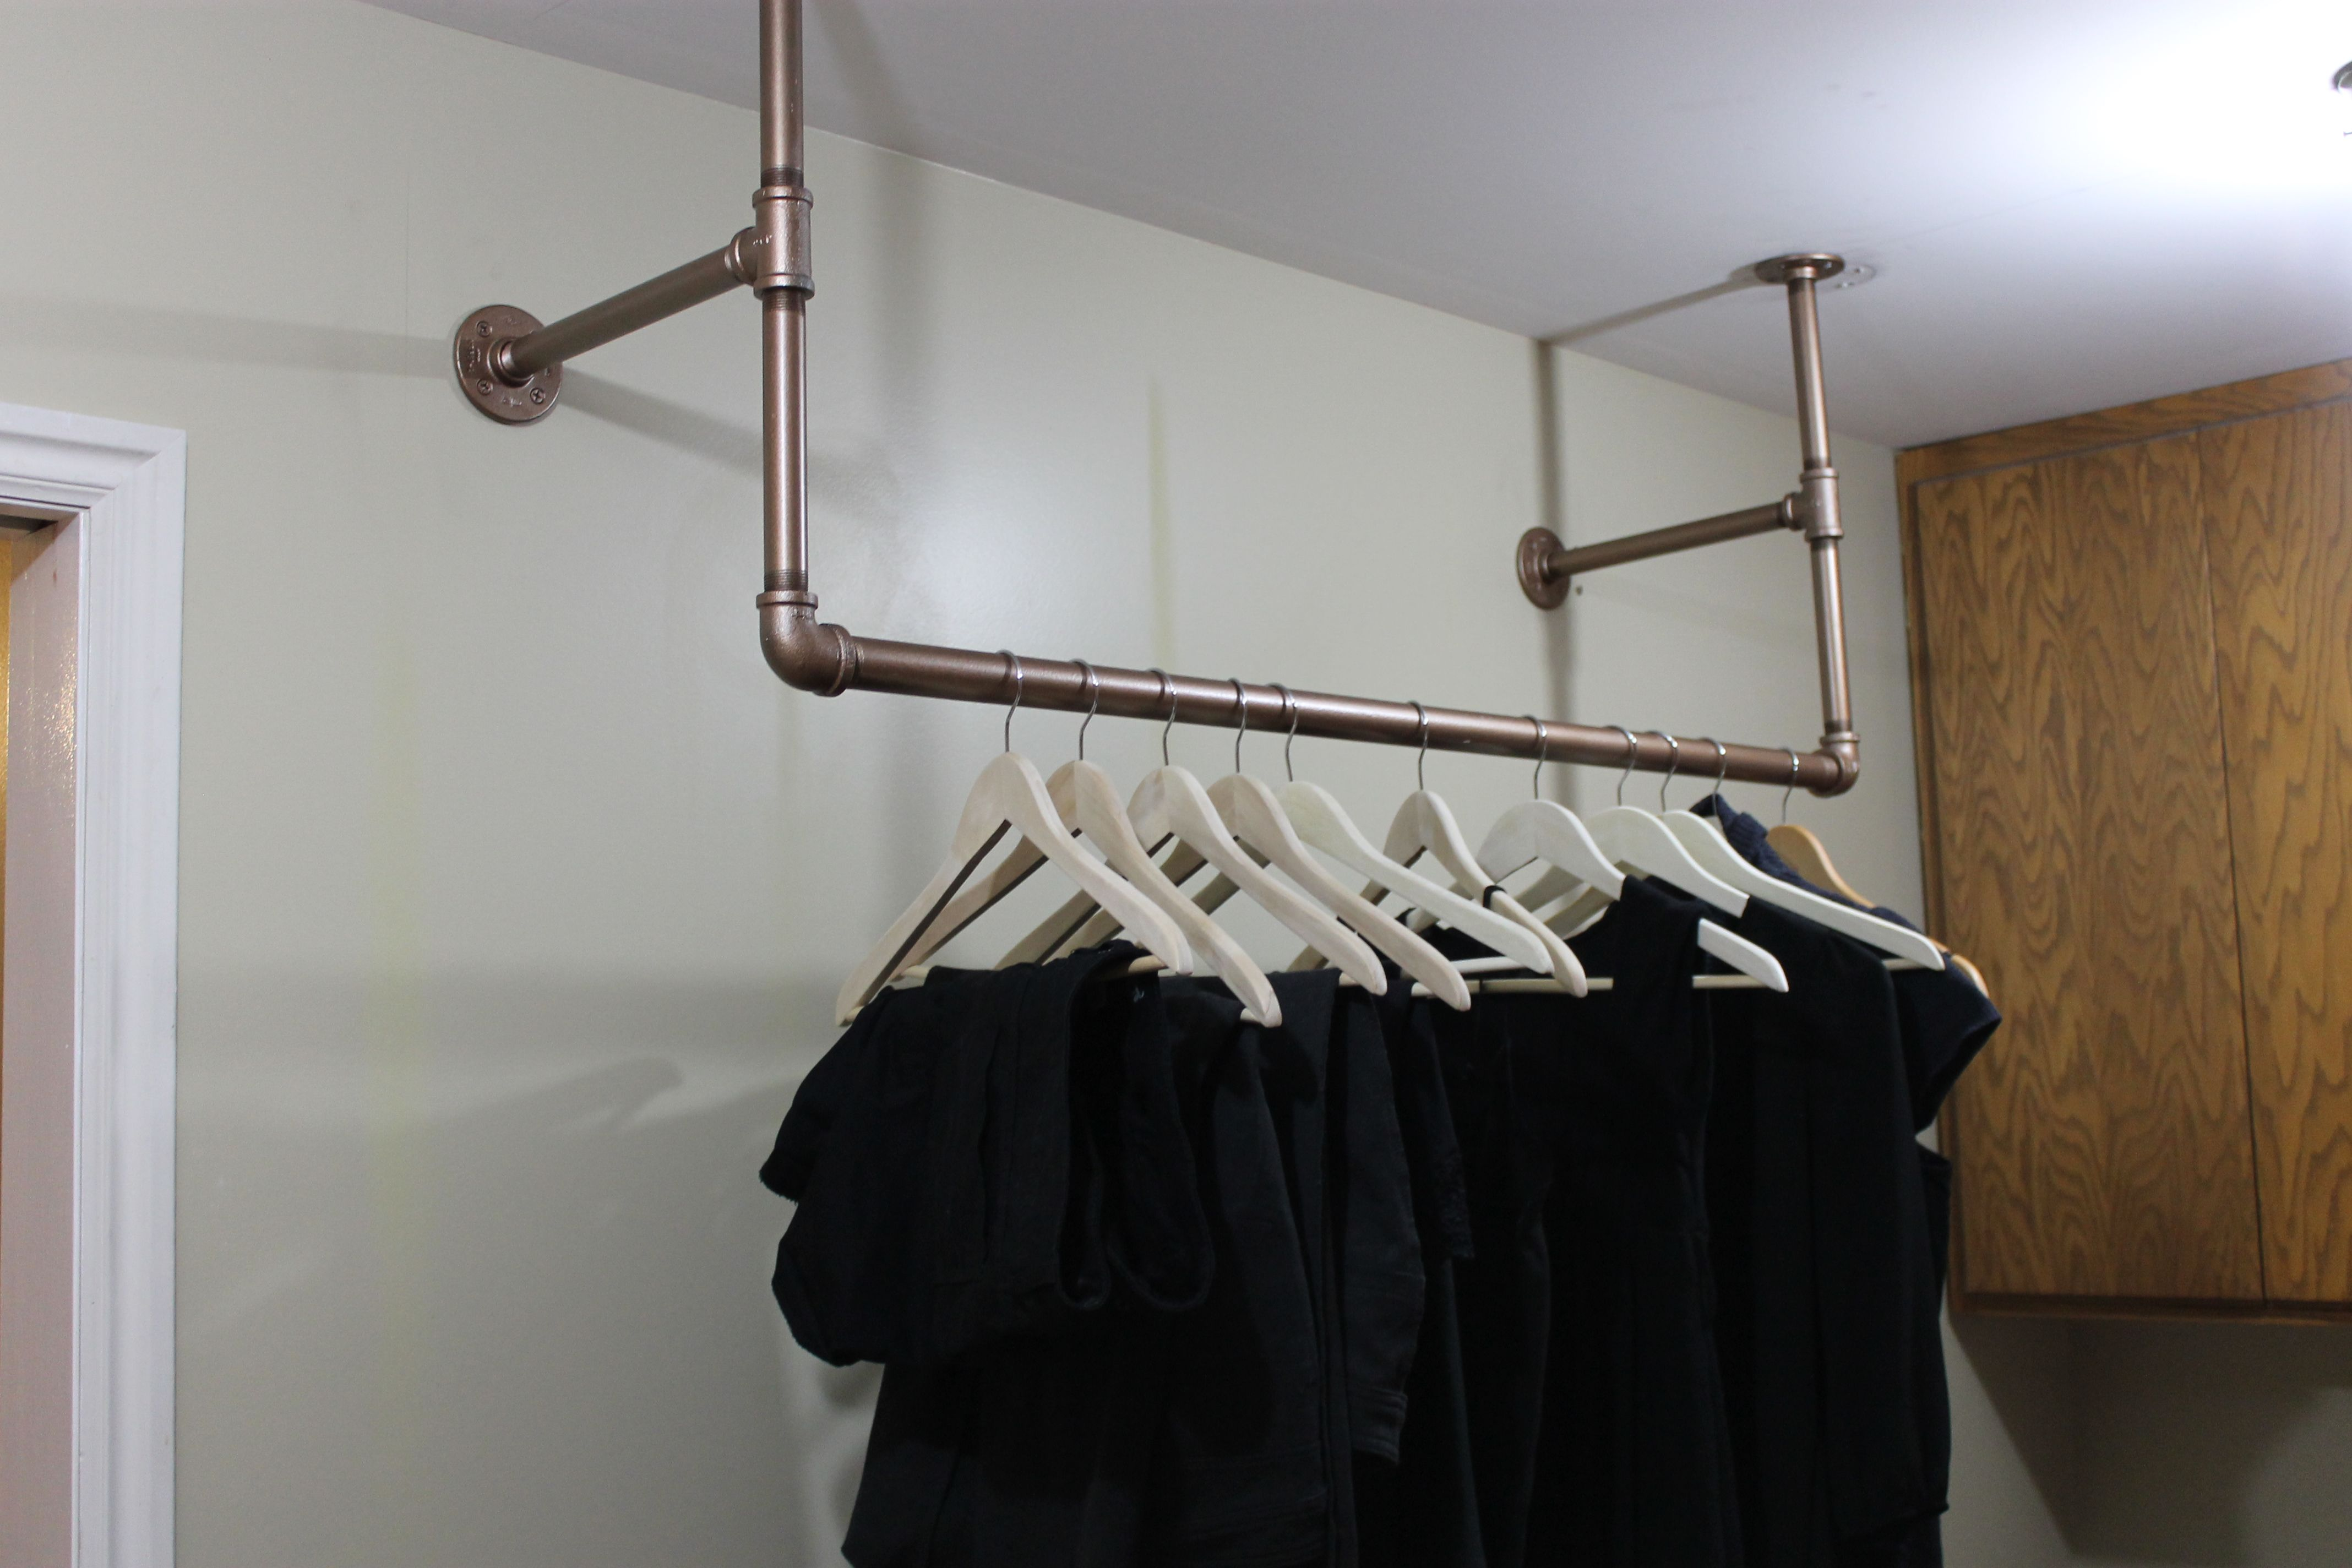 duty clothes hanging customerpicks clothing chrome for heavy amazon best houseware simple rack garment com